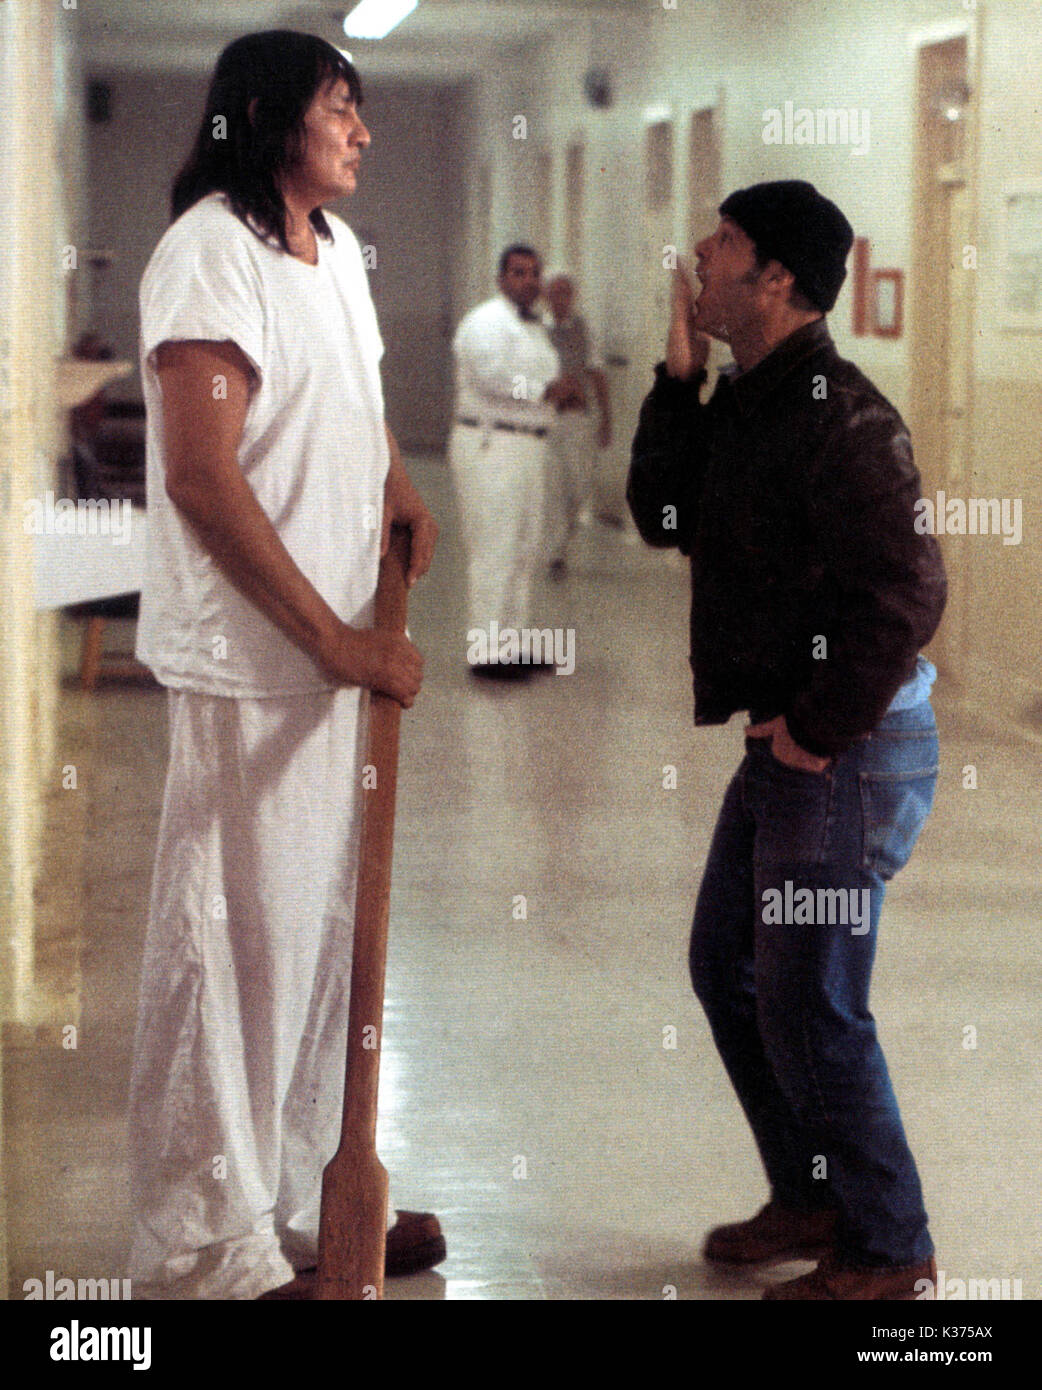 ONE FLEW OVER THE CUCKOO'S NEST (US1975) JACK NICHOLSON, WILL SAMPSON     Date: 1975 - Stock Image